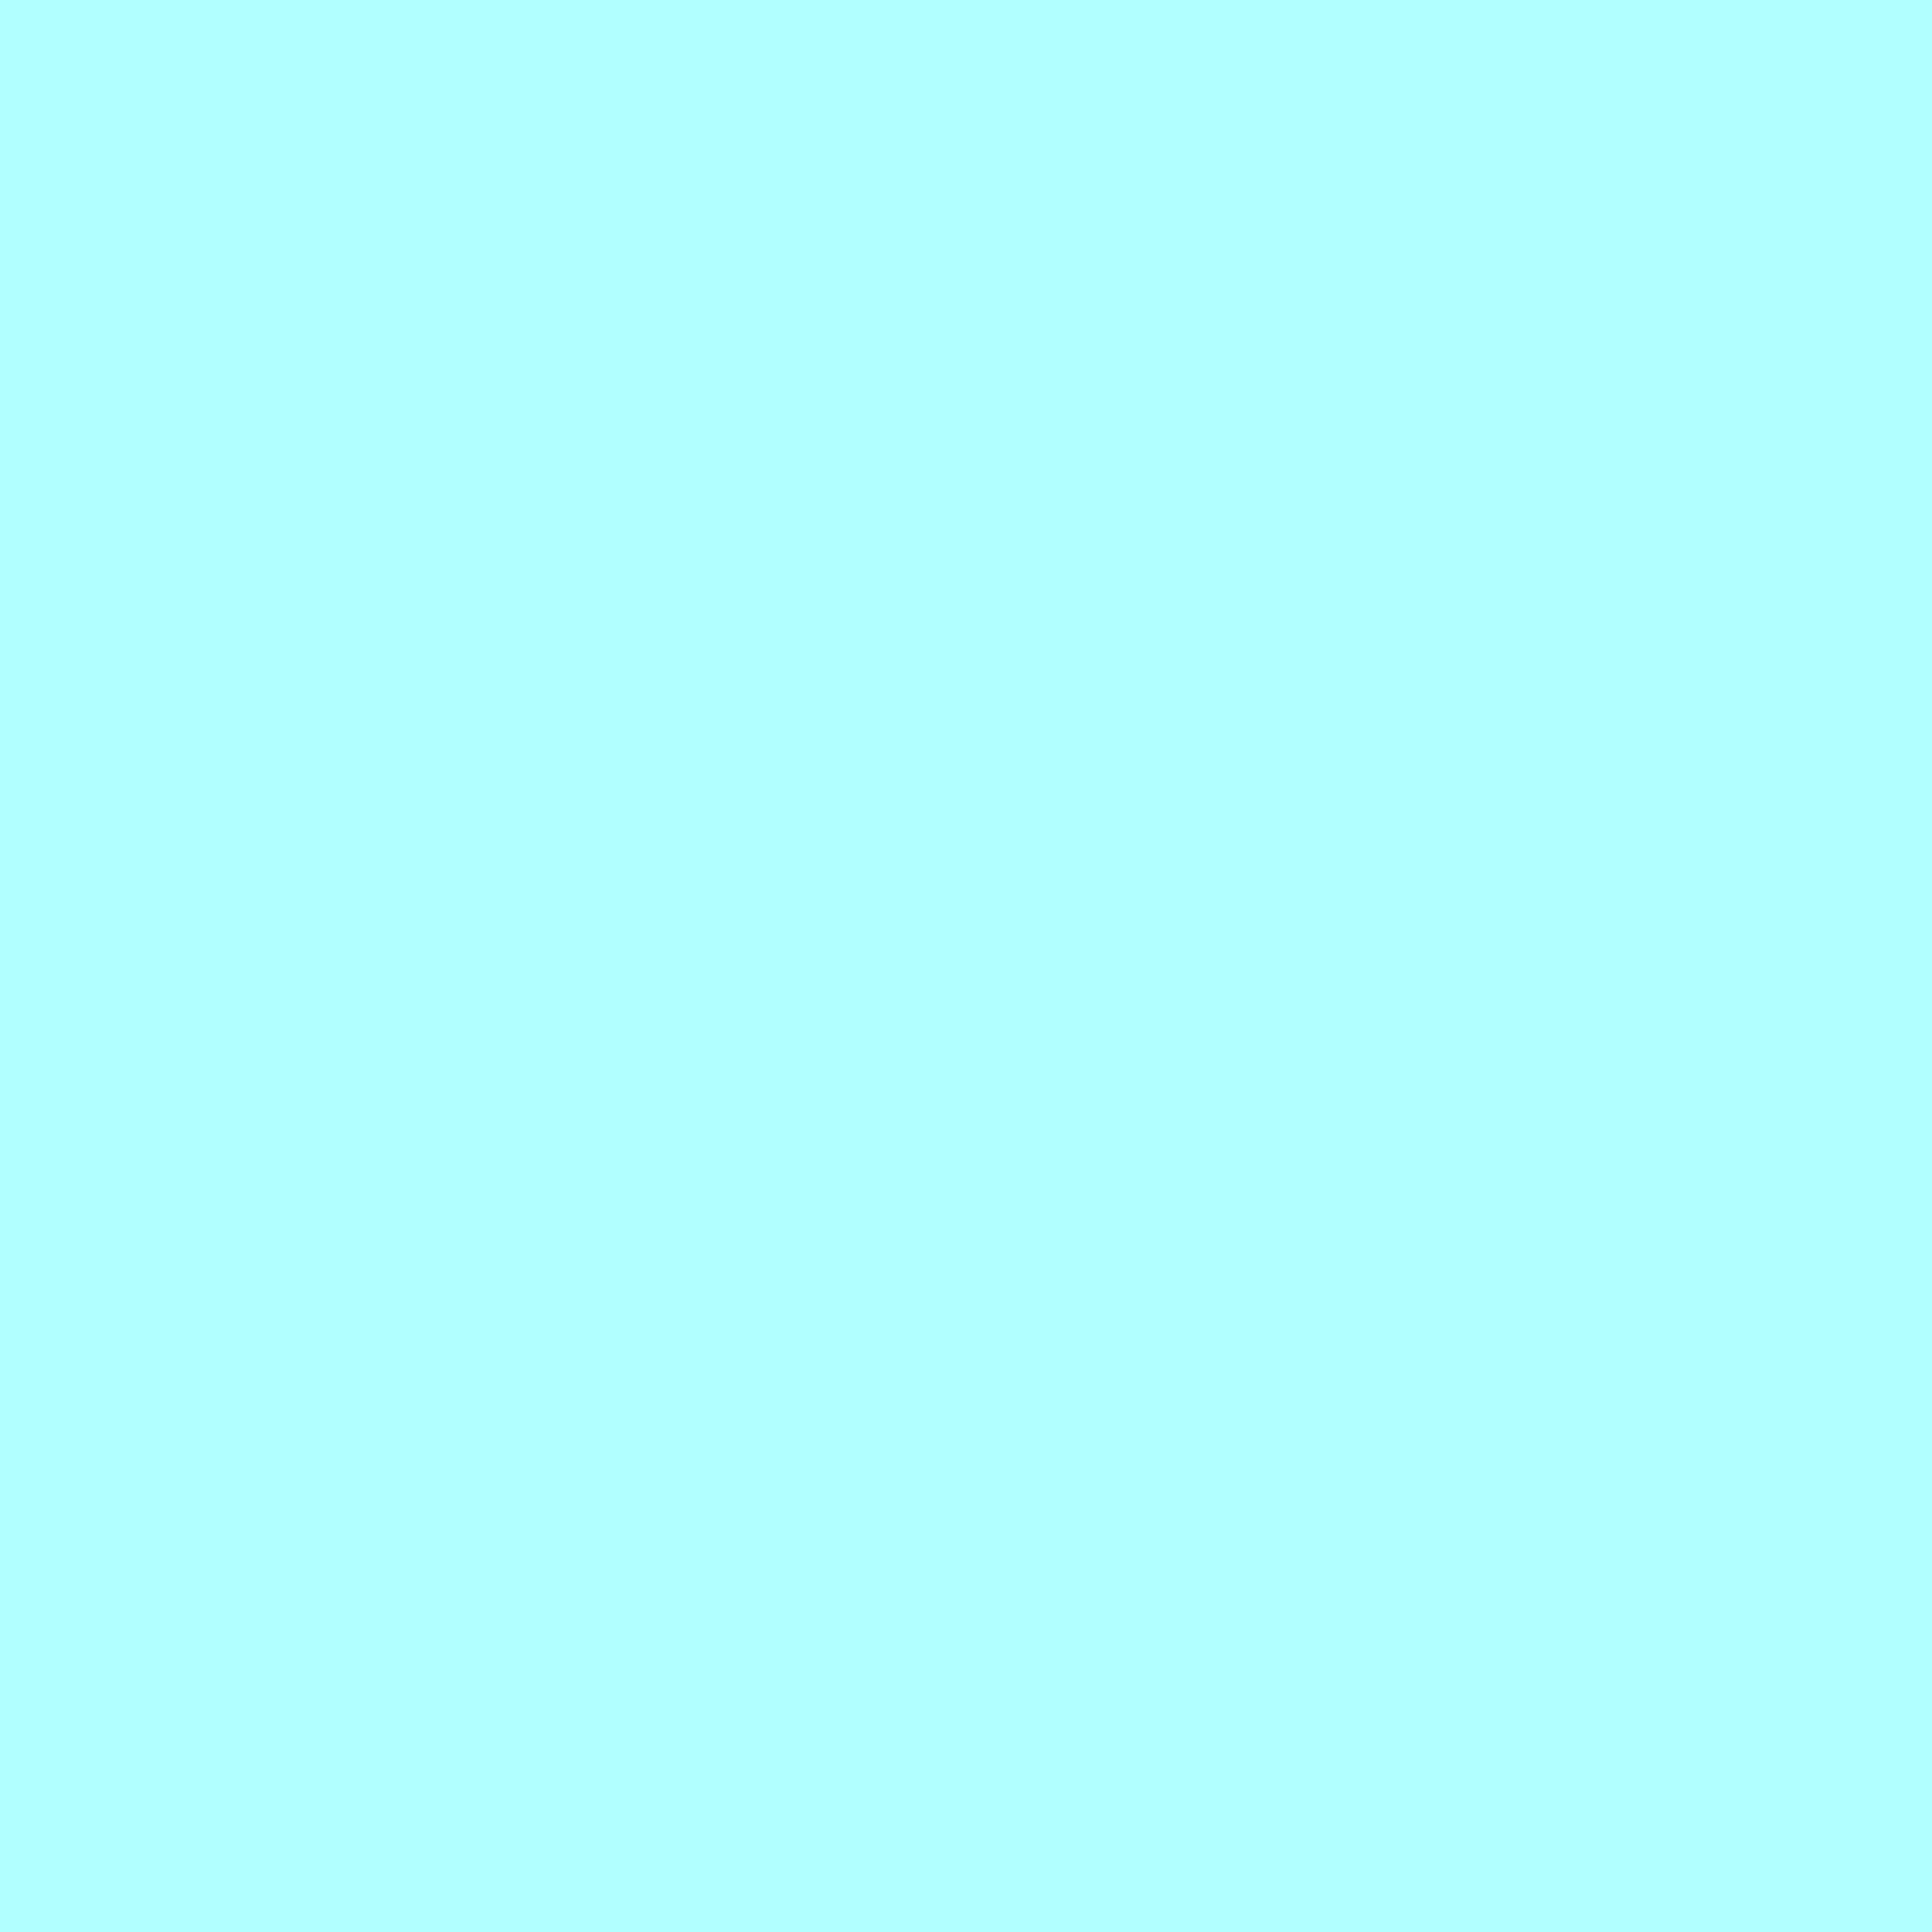 3600x3600 Italian Sky Blue Solid Color Background